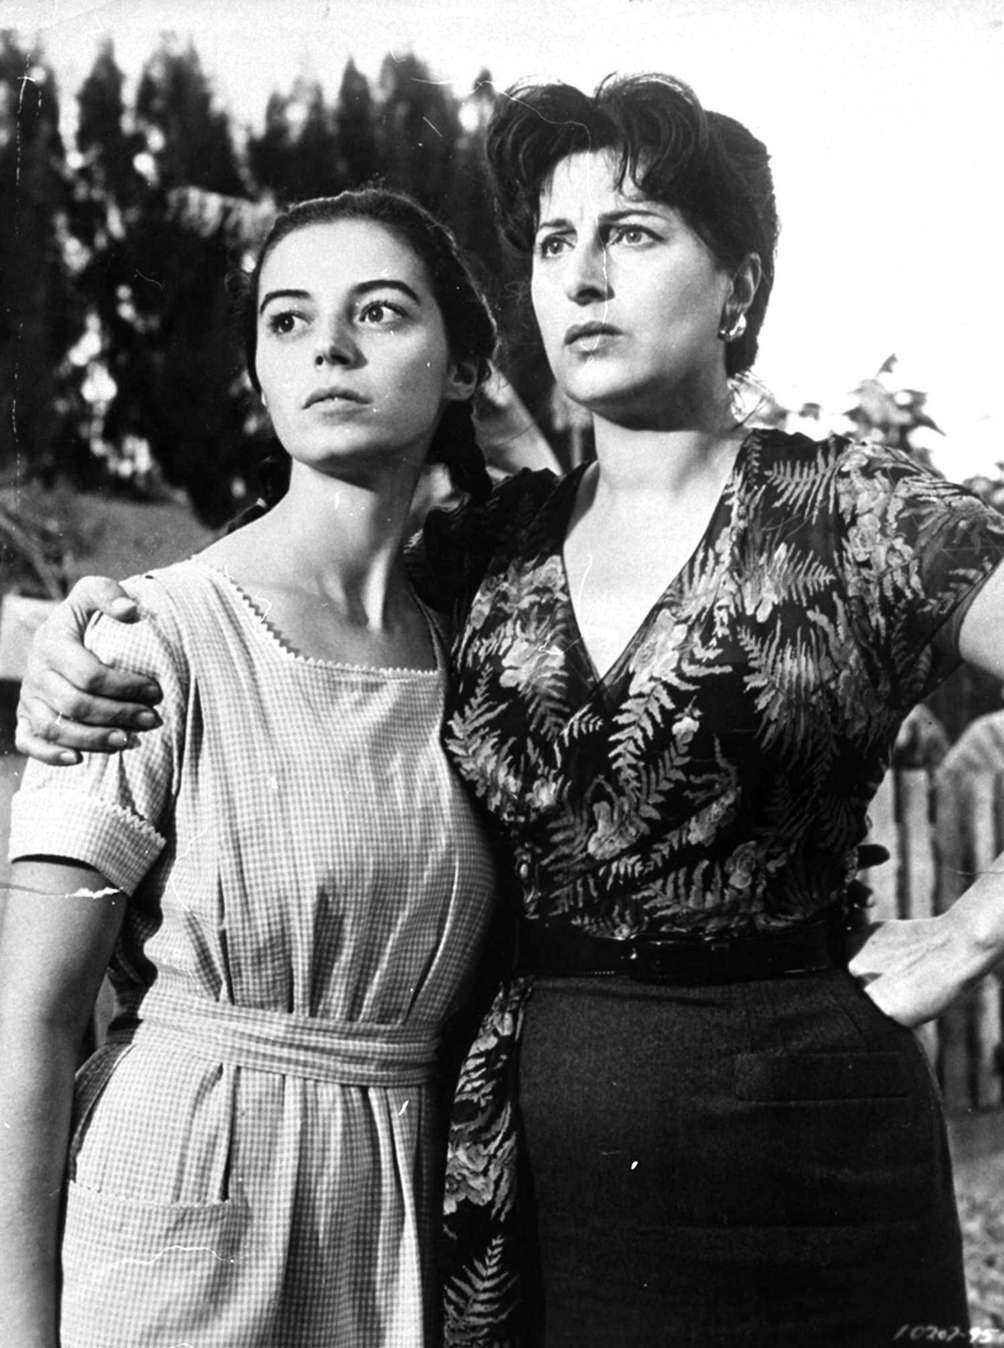 Marisa Pavan (left) and Anna Magnani, in a